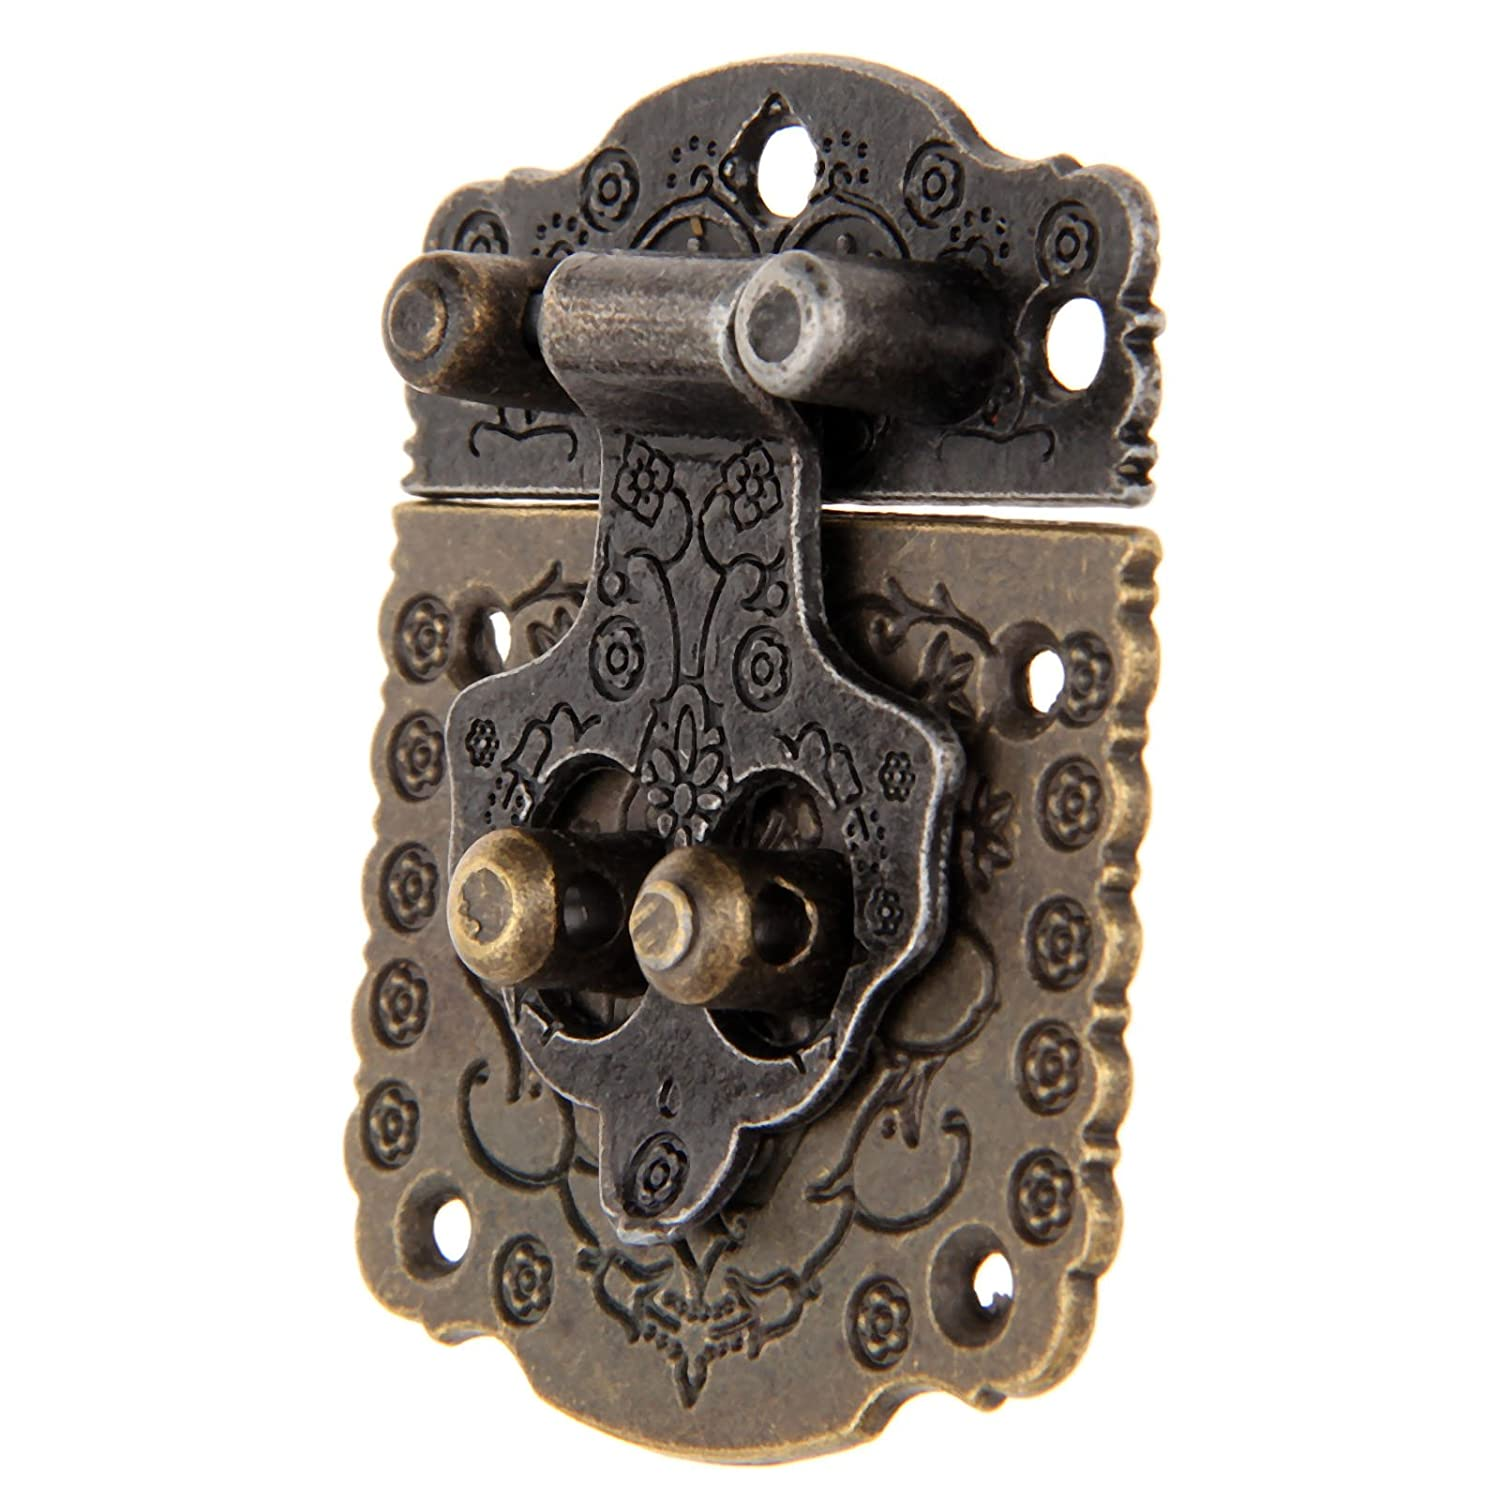 5Pcs 53x41mm Antique Brass Hasp Lock Latch with Screws for Jewelry Wooden Box Case Decoration